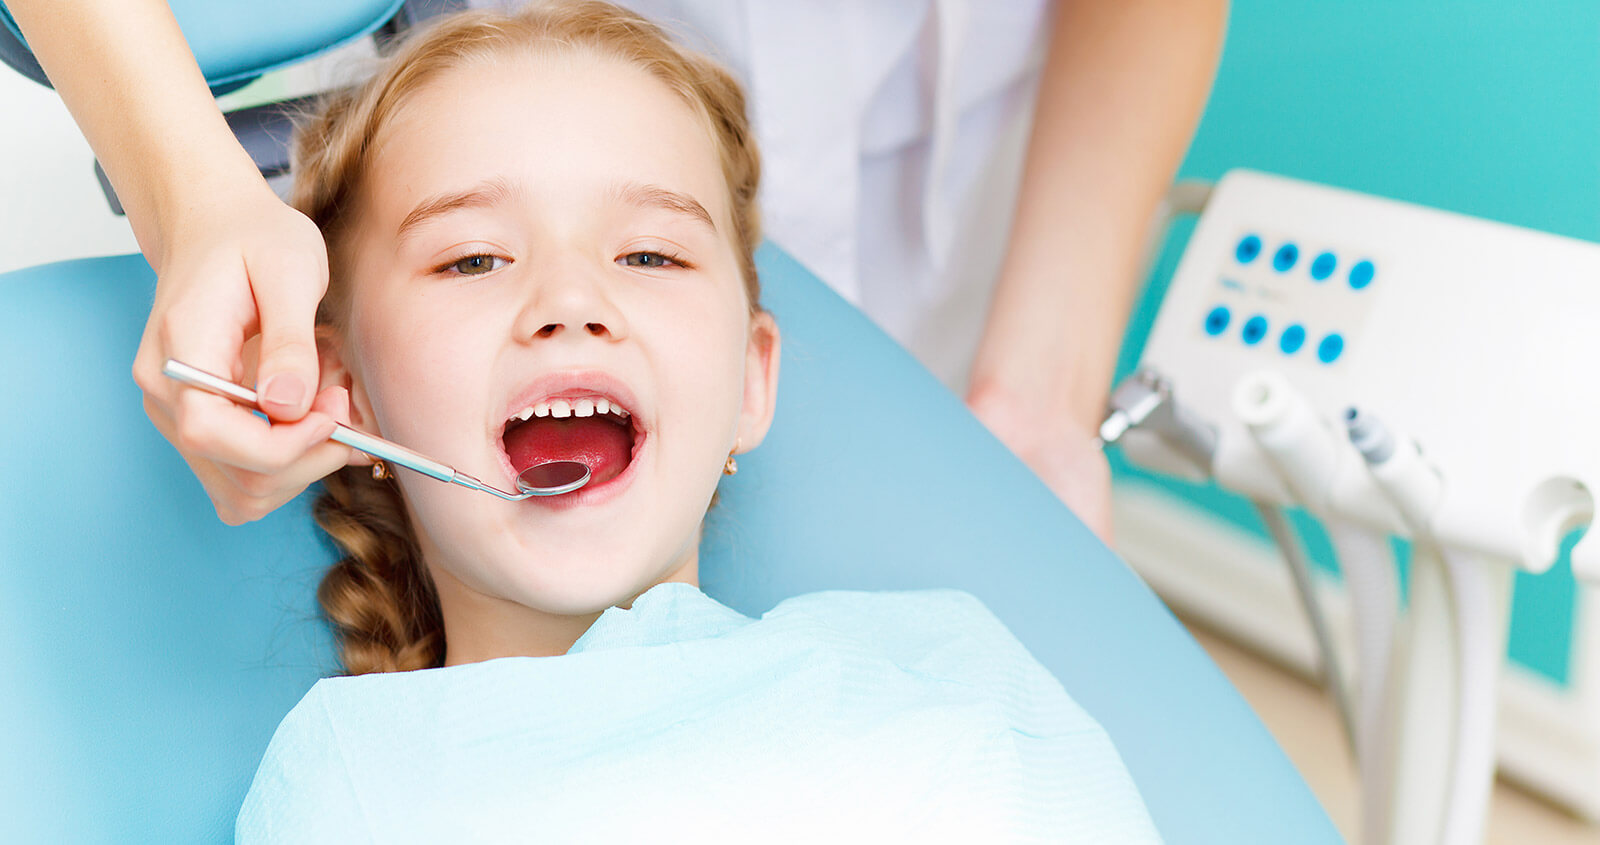 Dentist in Highland, MI Expresses the Importance of Developing Healthy Dental Habits at Home